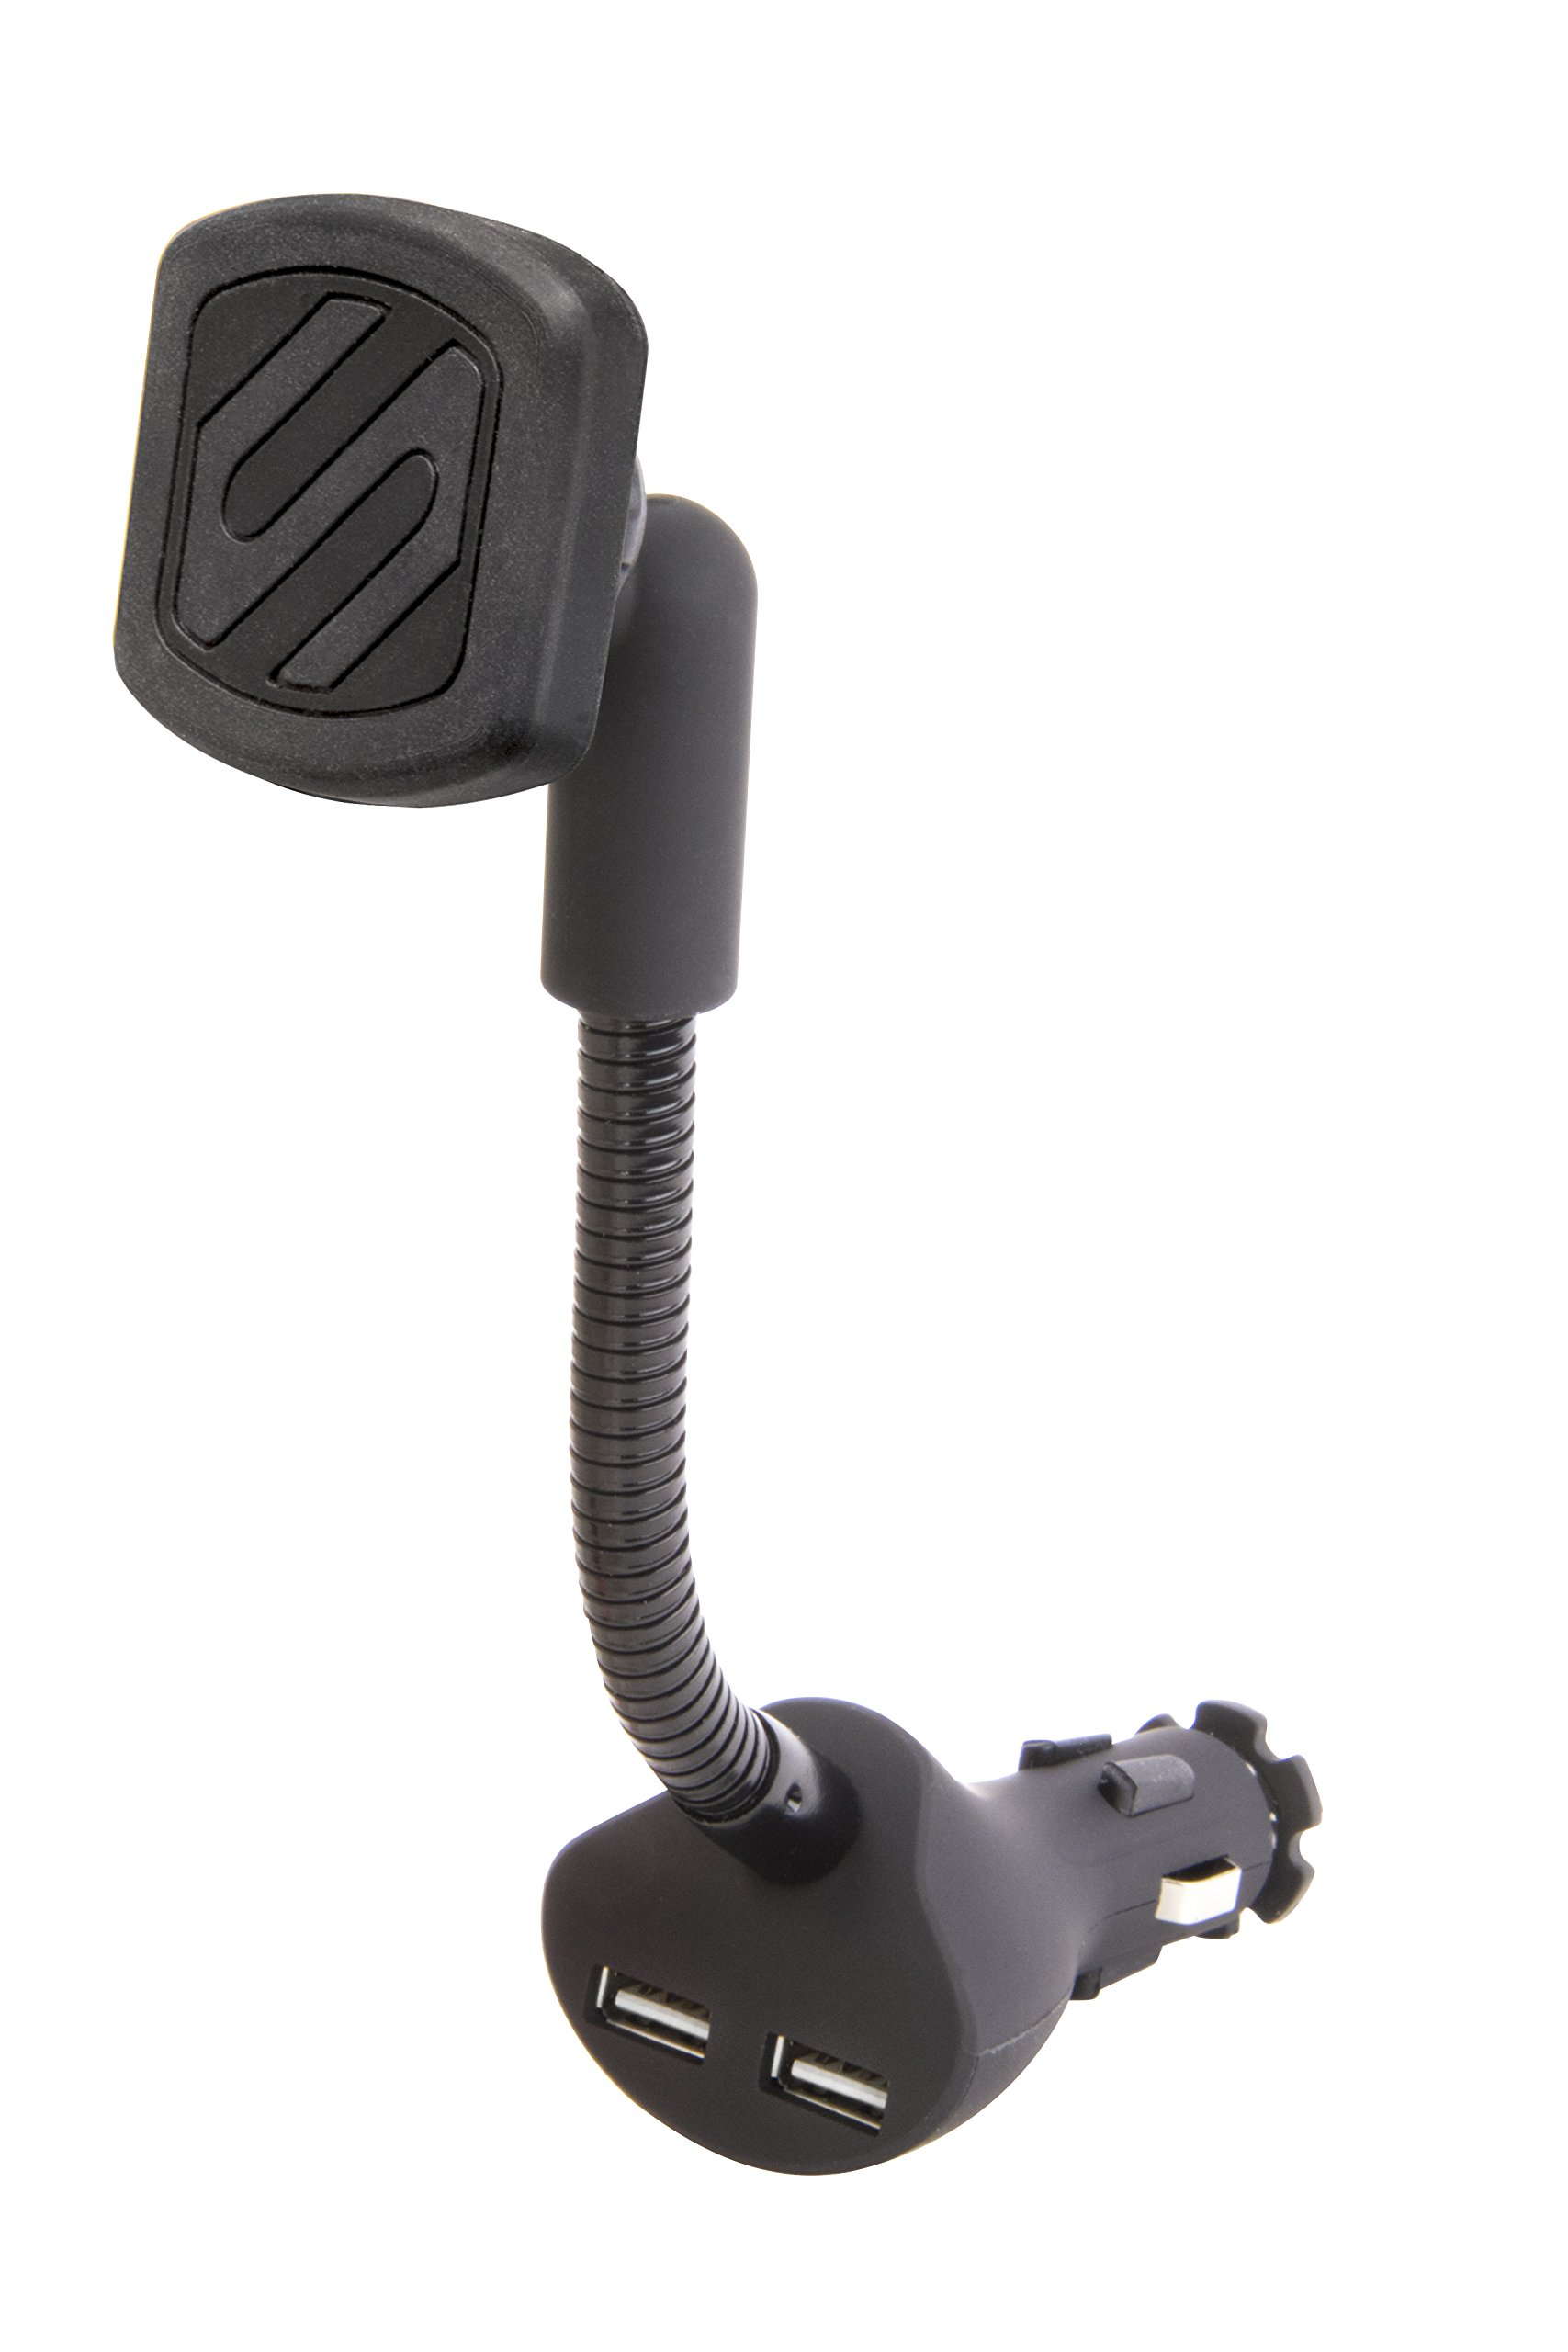 SCOSCHE MAGC242 MagicMount Magnetic Phone/GPS Power Outlet Mount for The Car